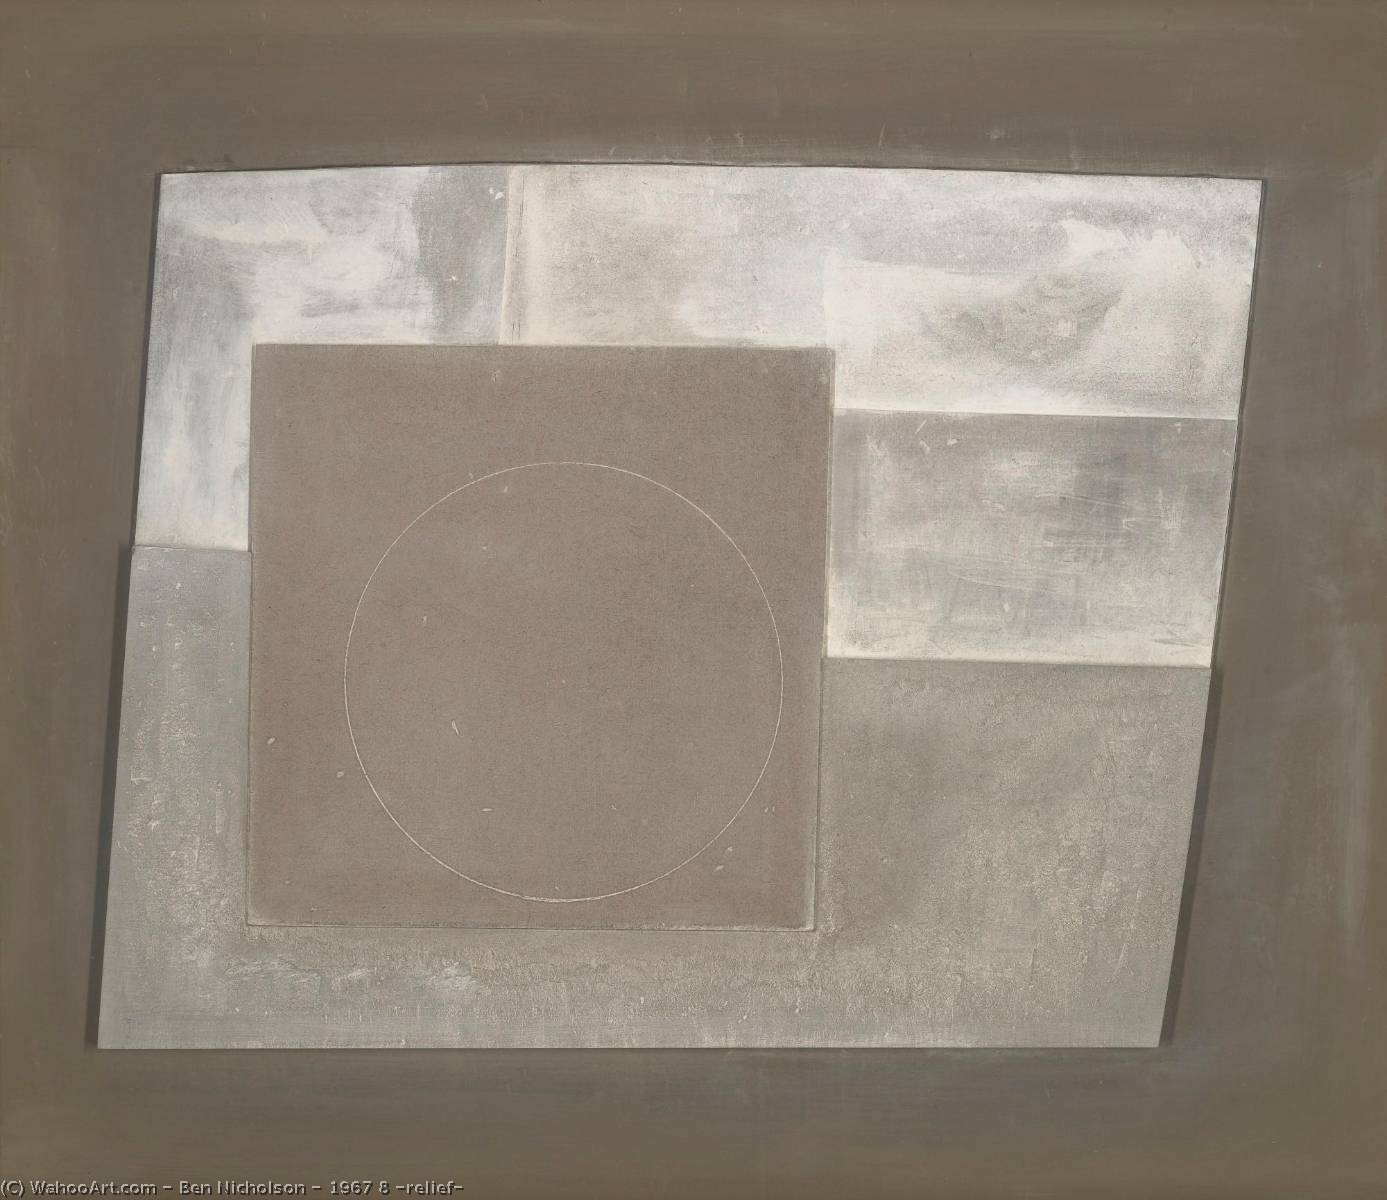 1967 8  救済 , 彫 バイ Ben Nicholson (1894-1982, United Kingdom)